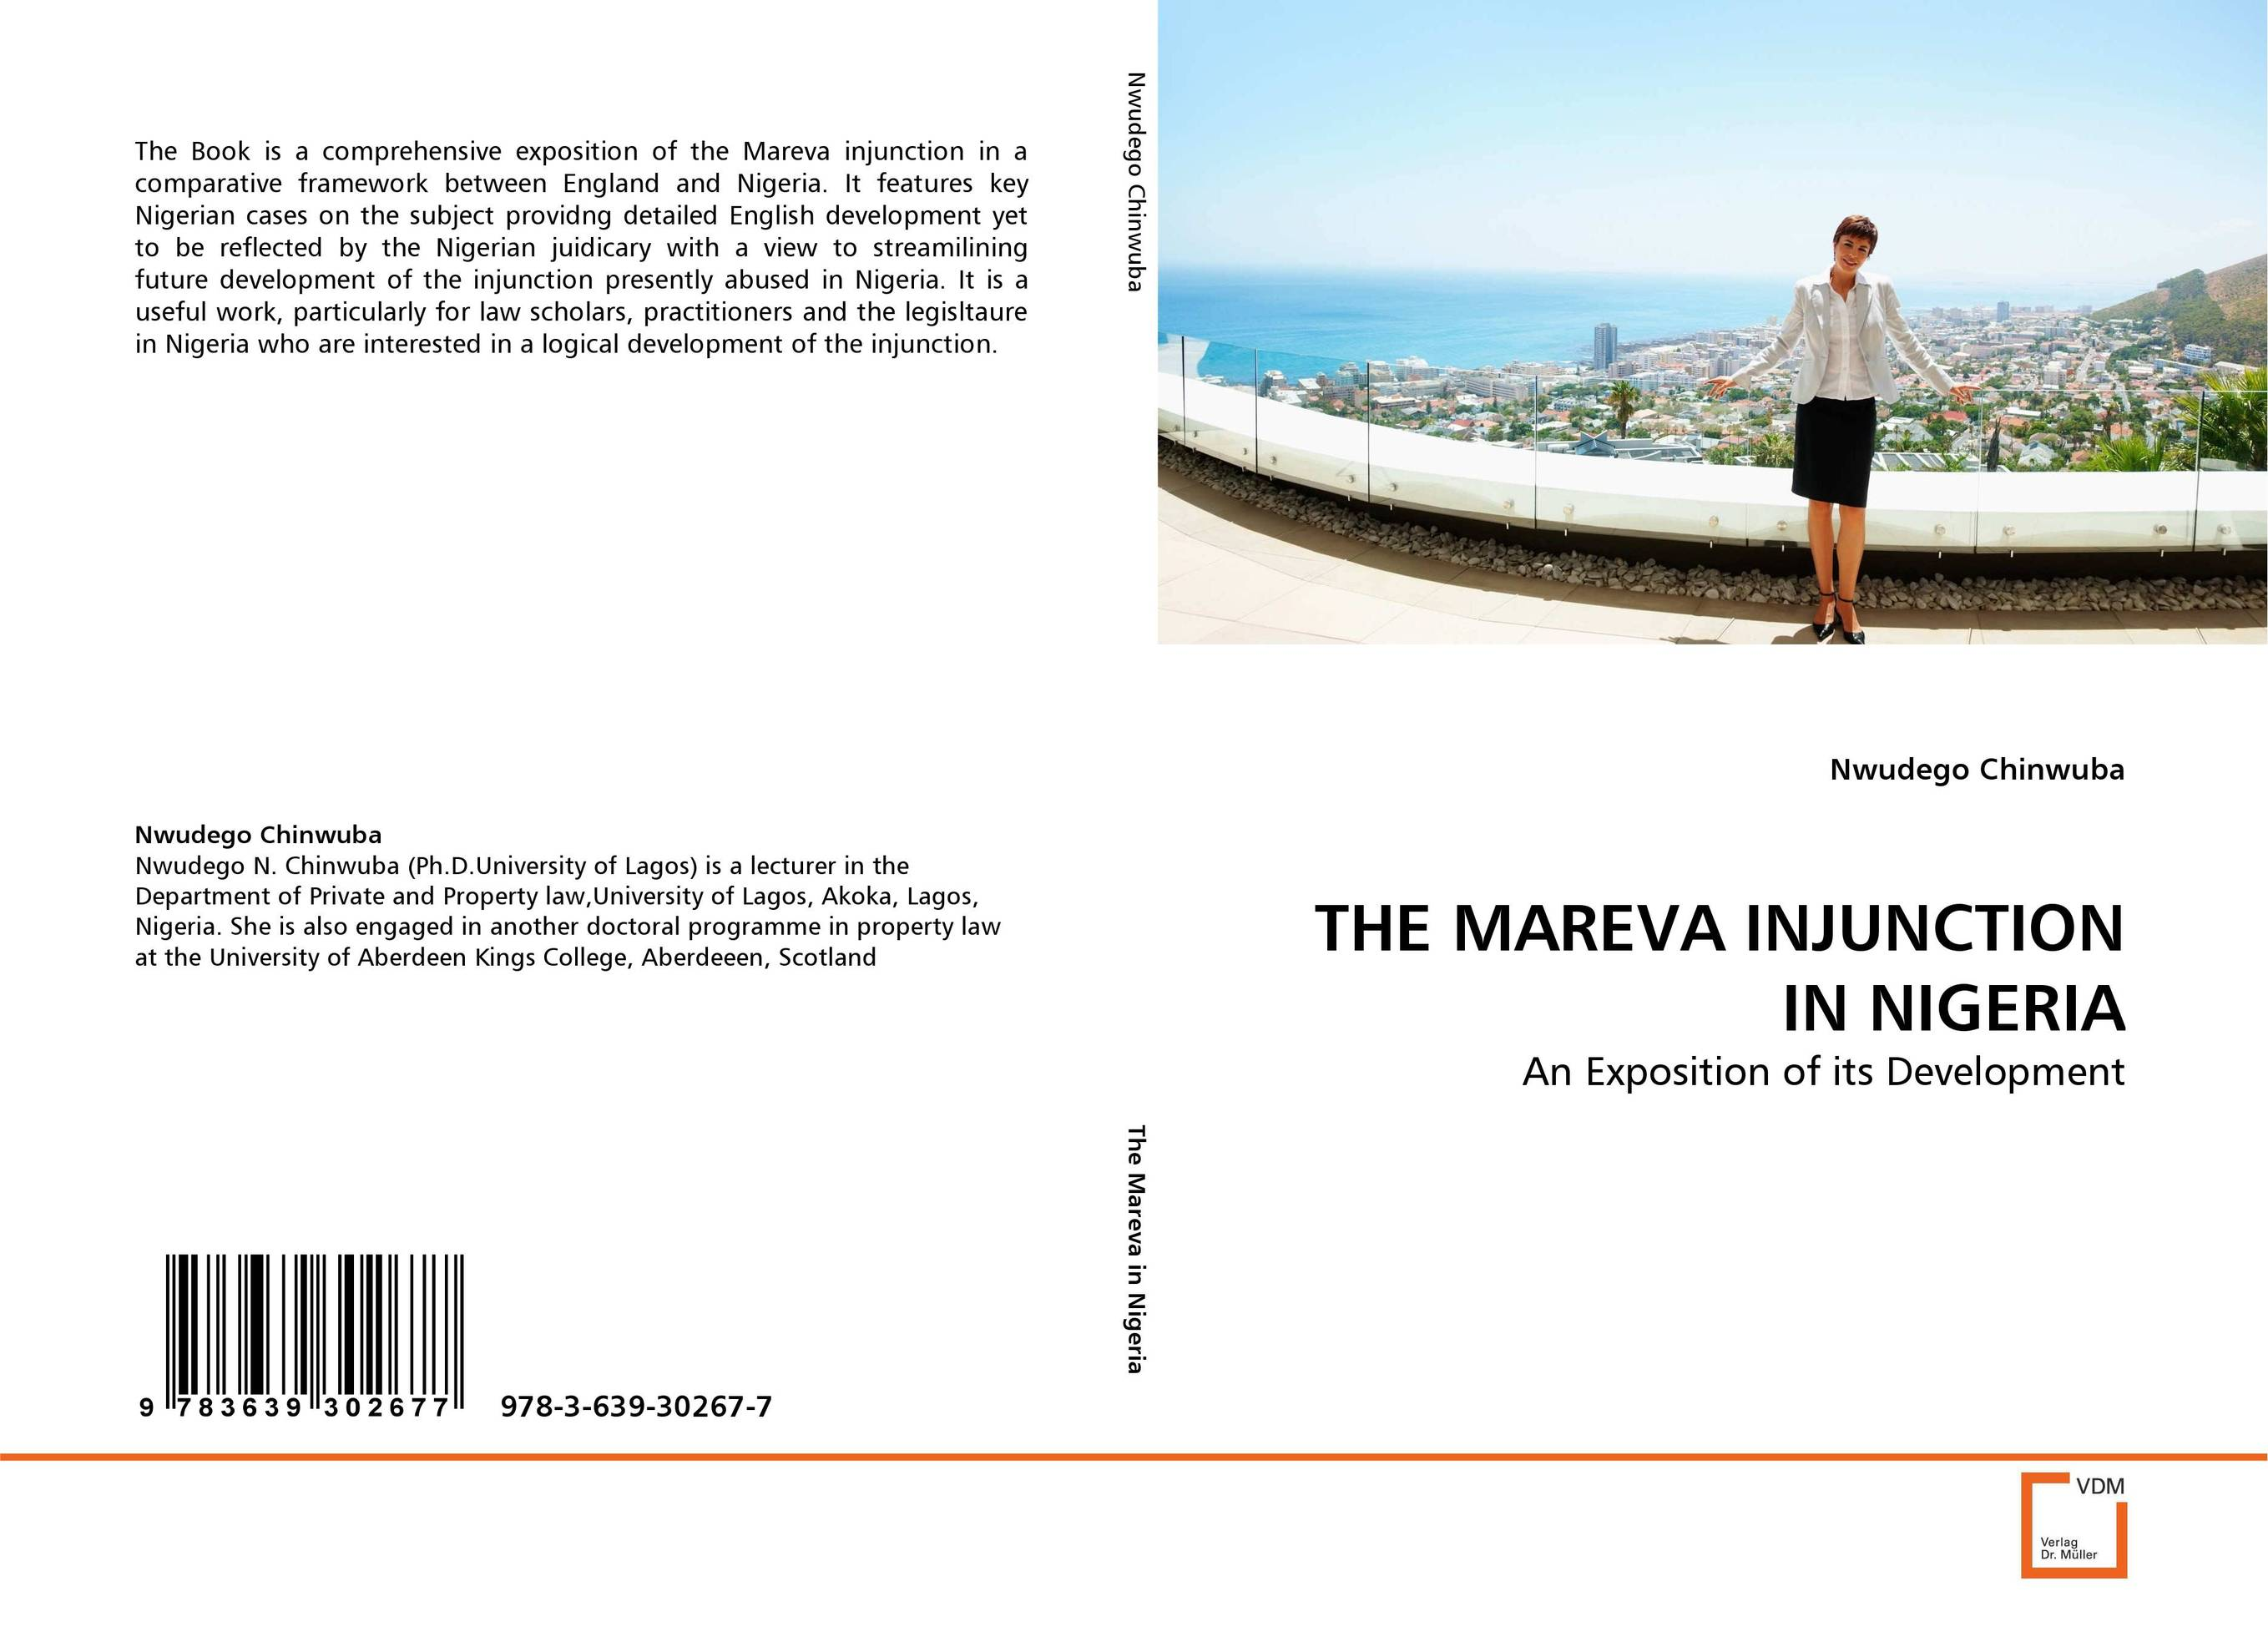 THE MAREVA INJUNCTION IN NIGERIA comparative assessment of petroleum sharing contracts in nigeria